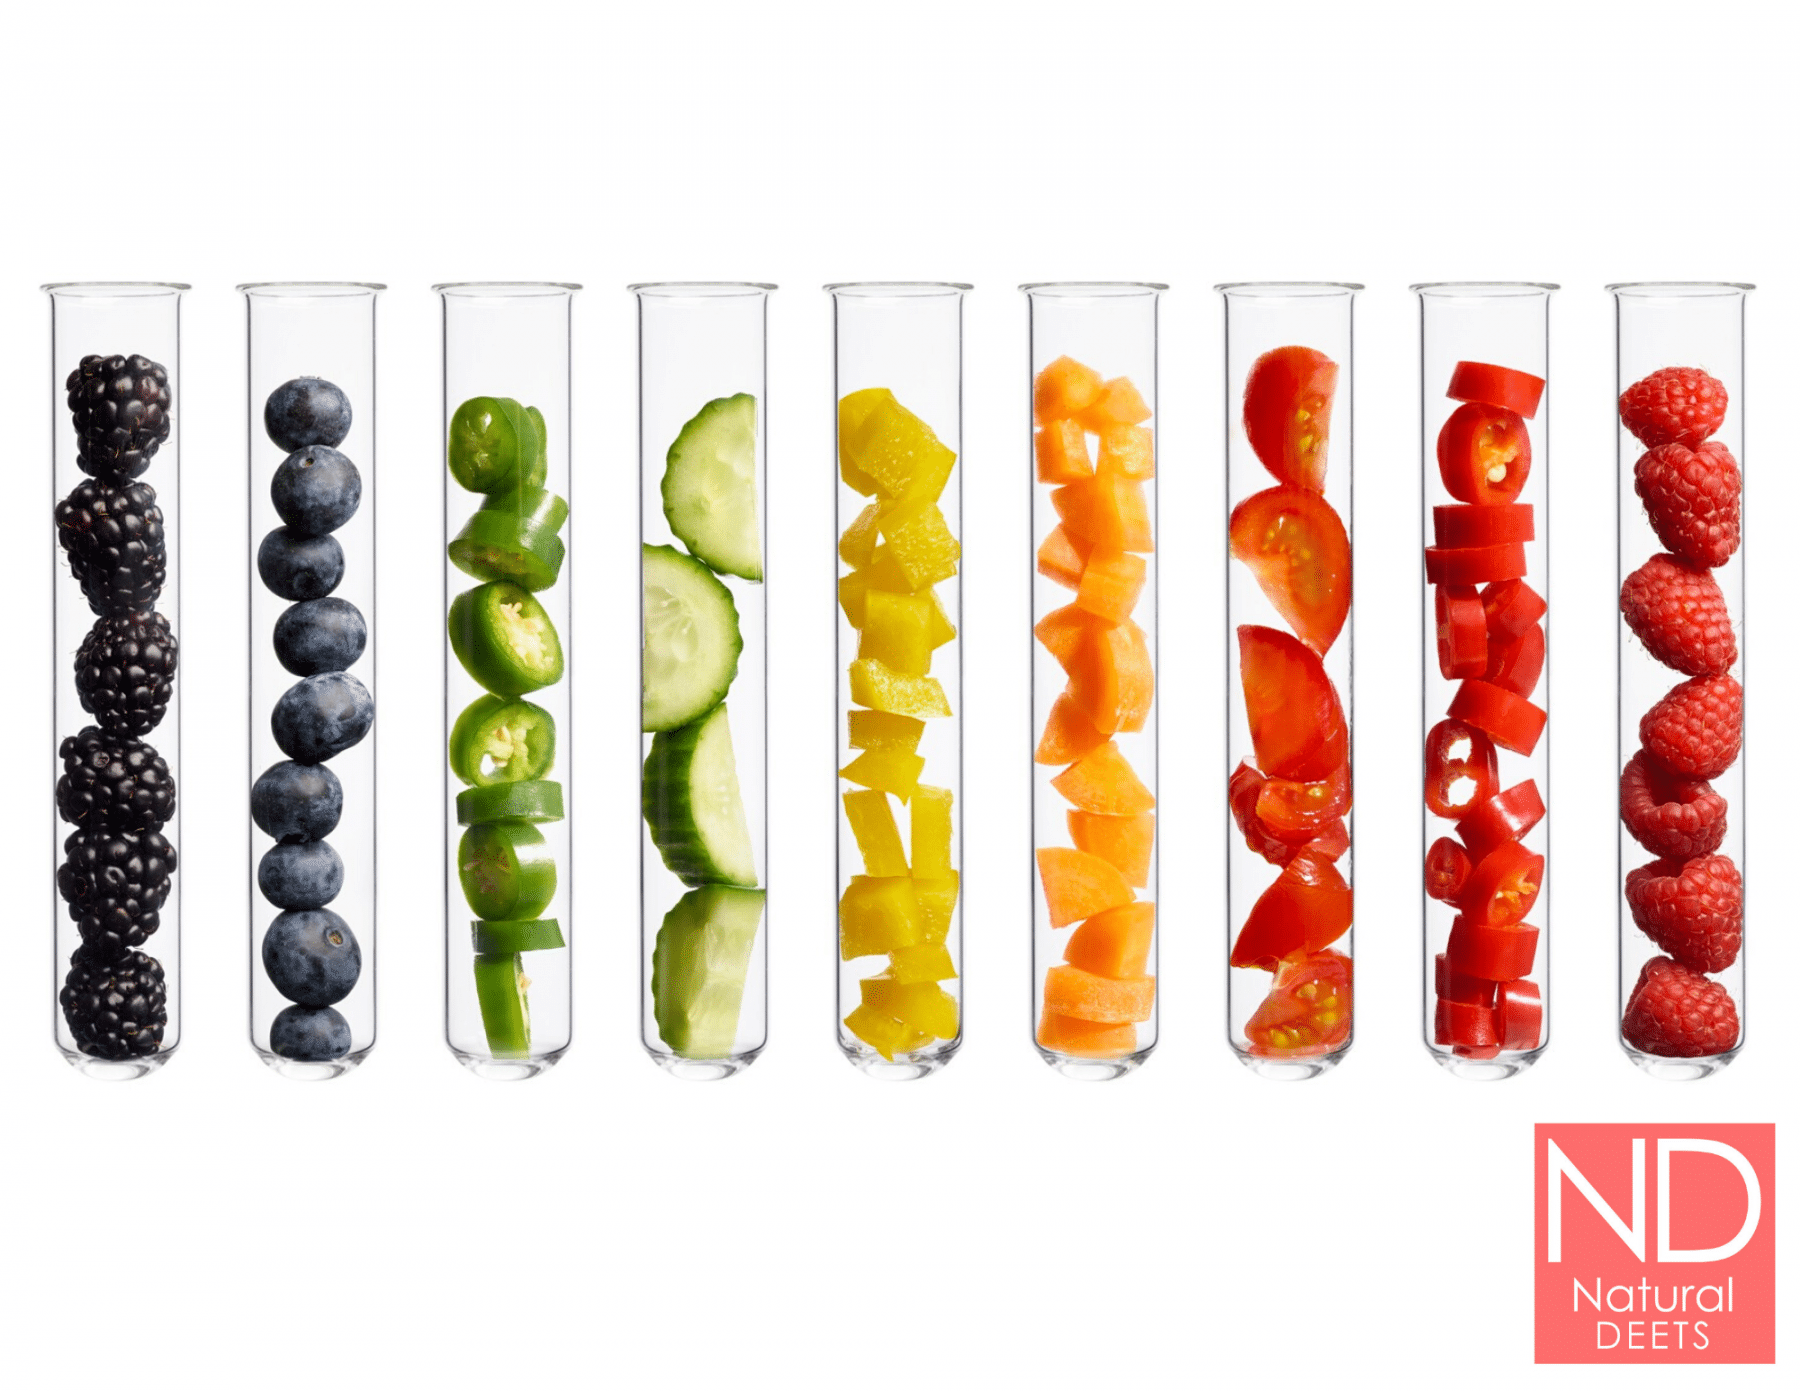 a picture of different colored fruits and vegetables in test tubes